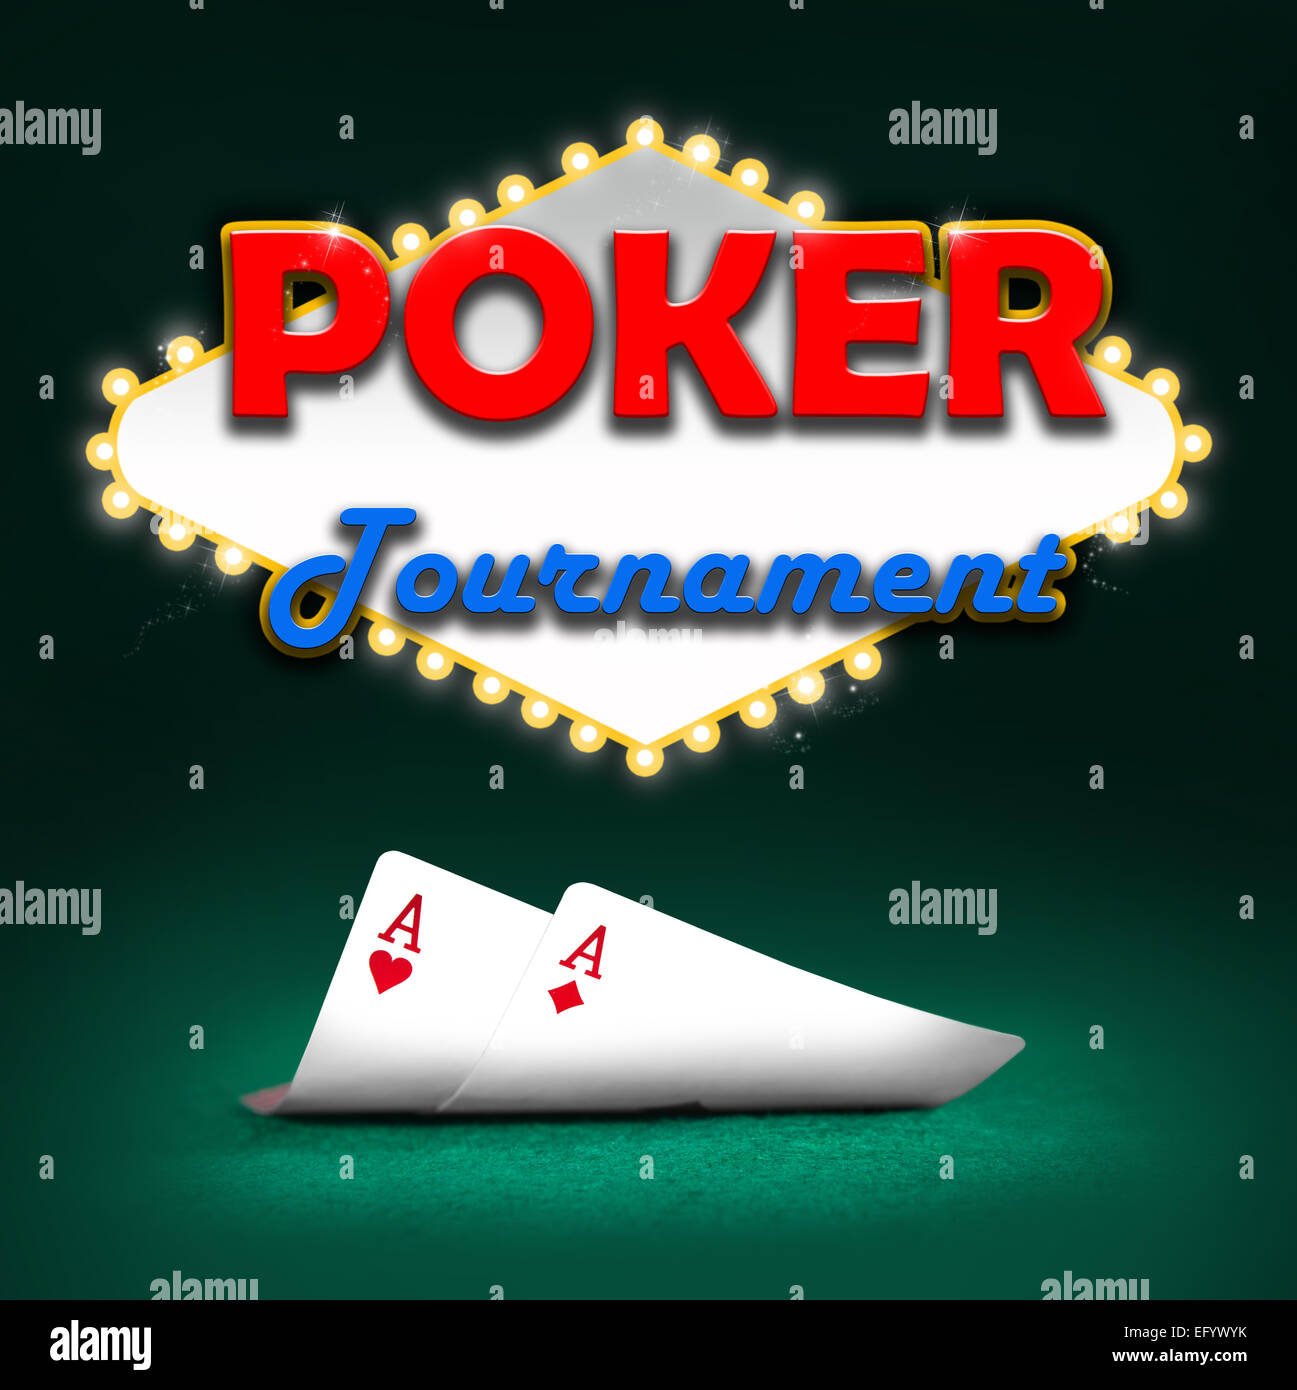 Poker tournament, gambling background color - Stock Image